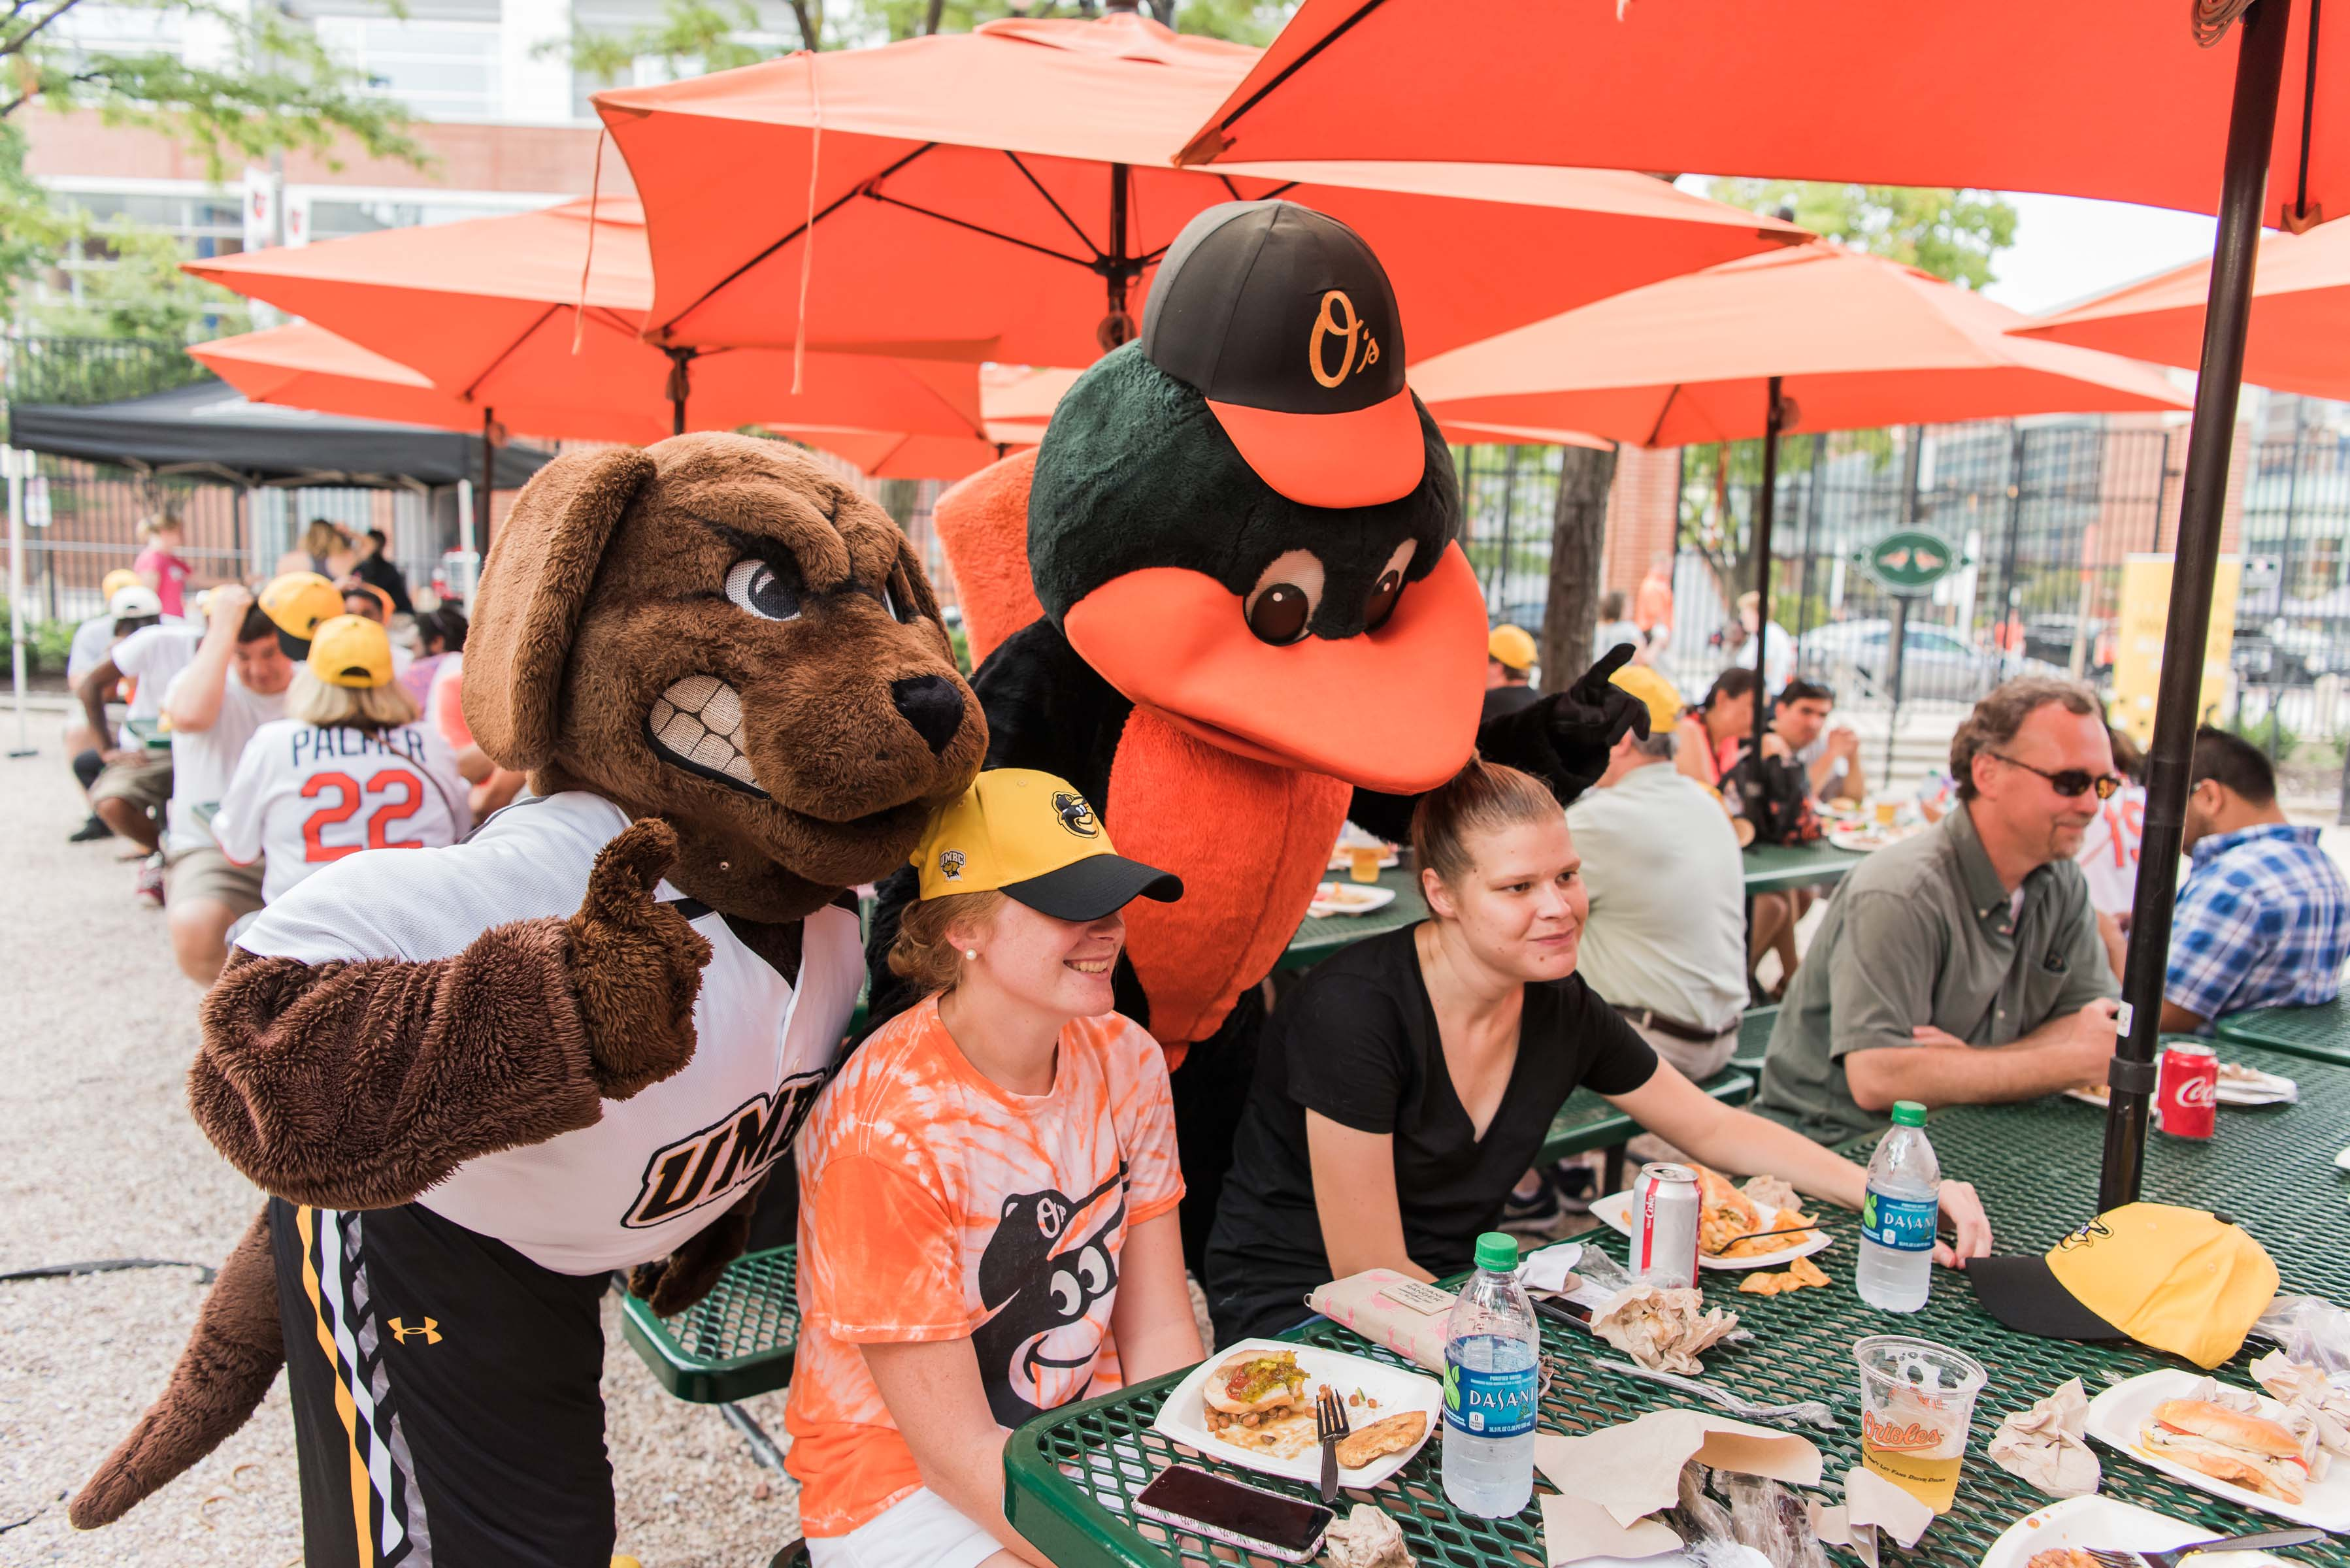 Orioles and UMBC mascot posing with fans at table